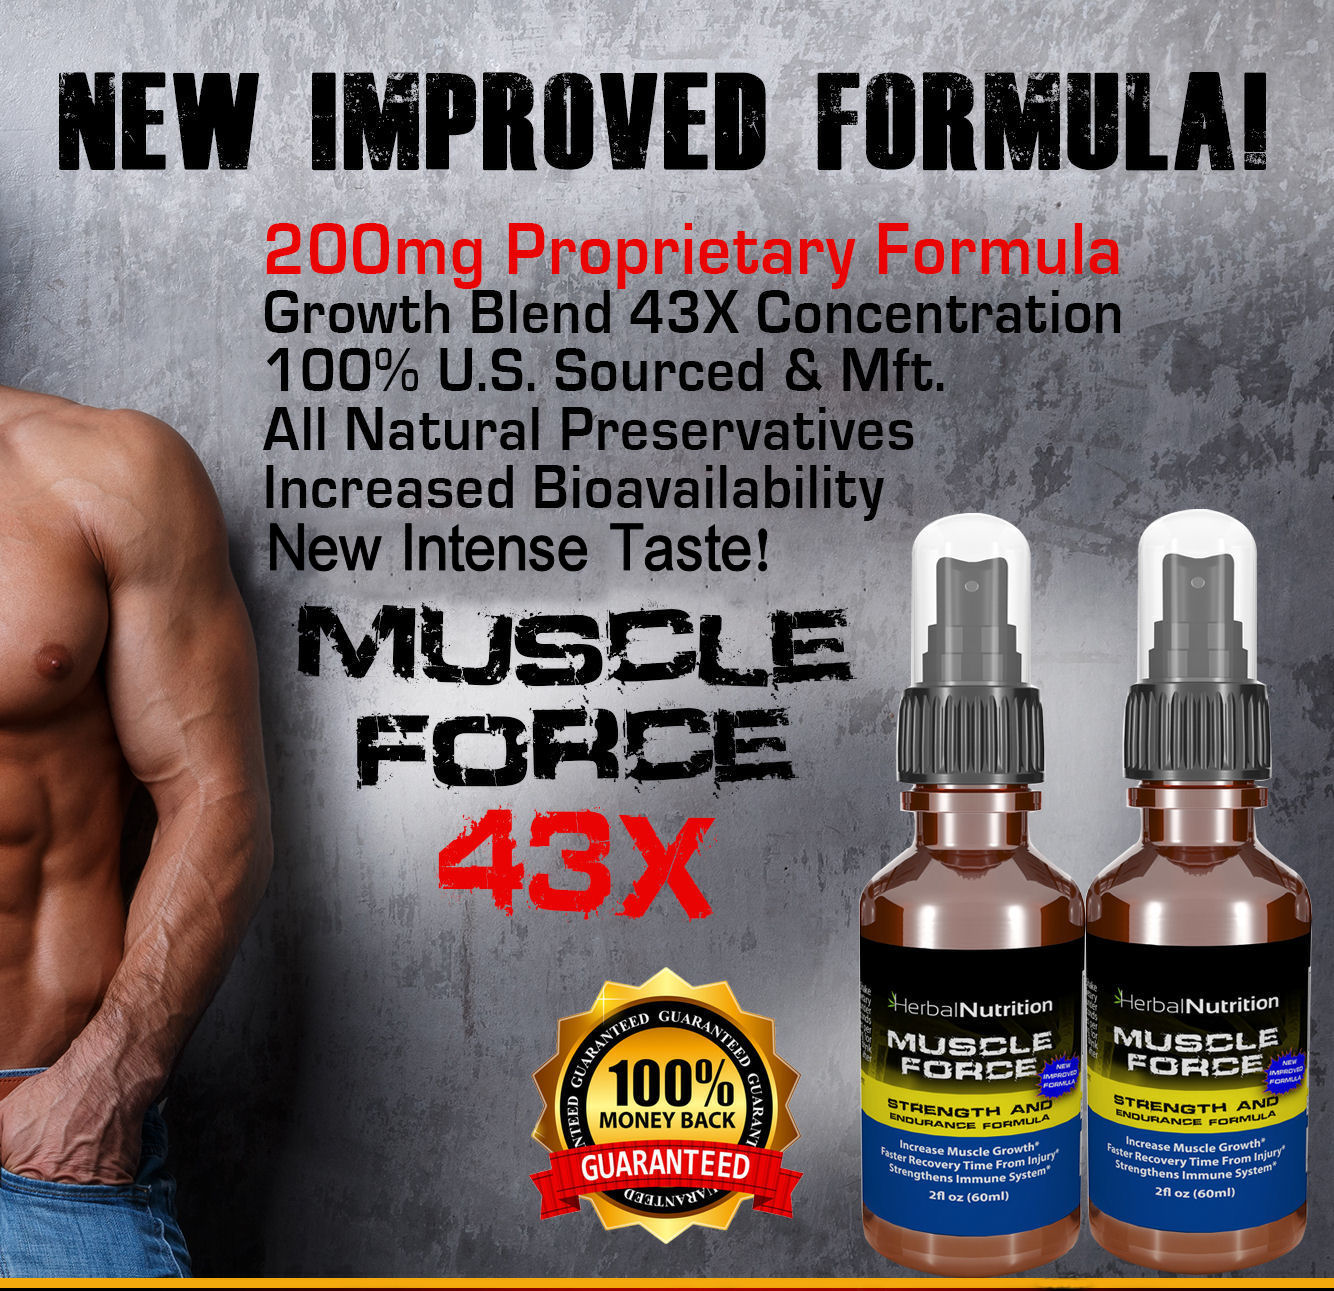 Muscle Force Strength & Endurance Spray List of Benefits